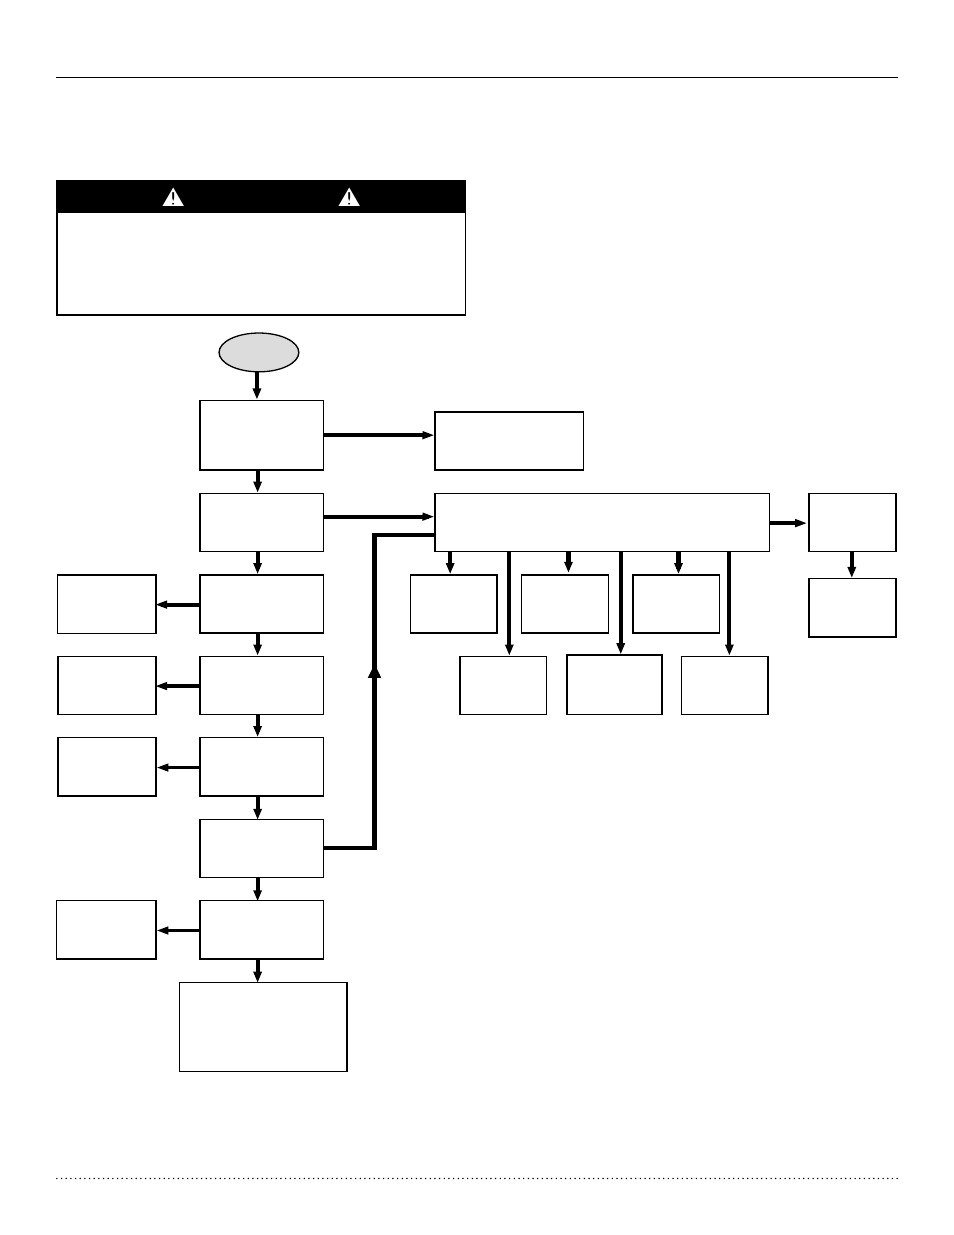 Cxm Functional Troubleshooting Flow Chart Process Diagram Yes No Warning Comfort Aire Hth Series User Manual Page 44 48